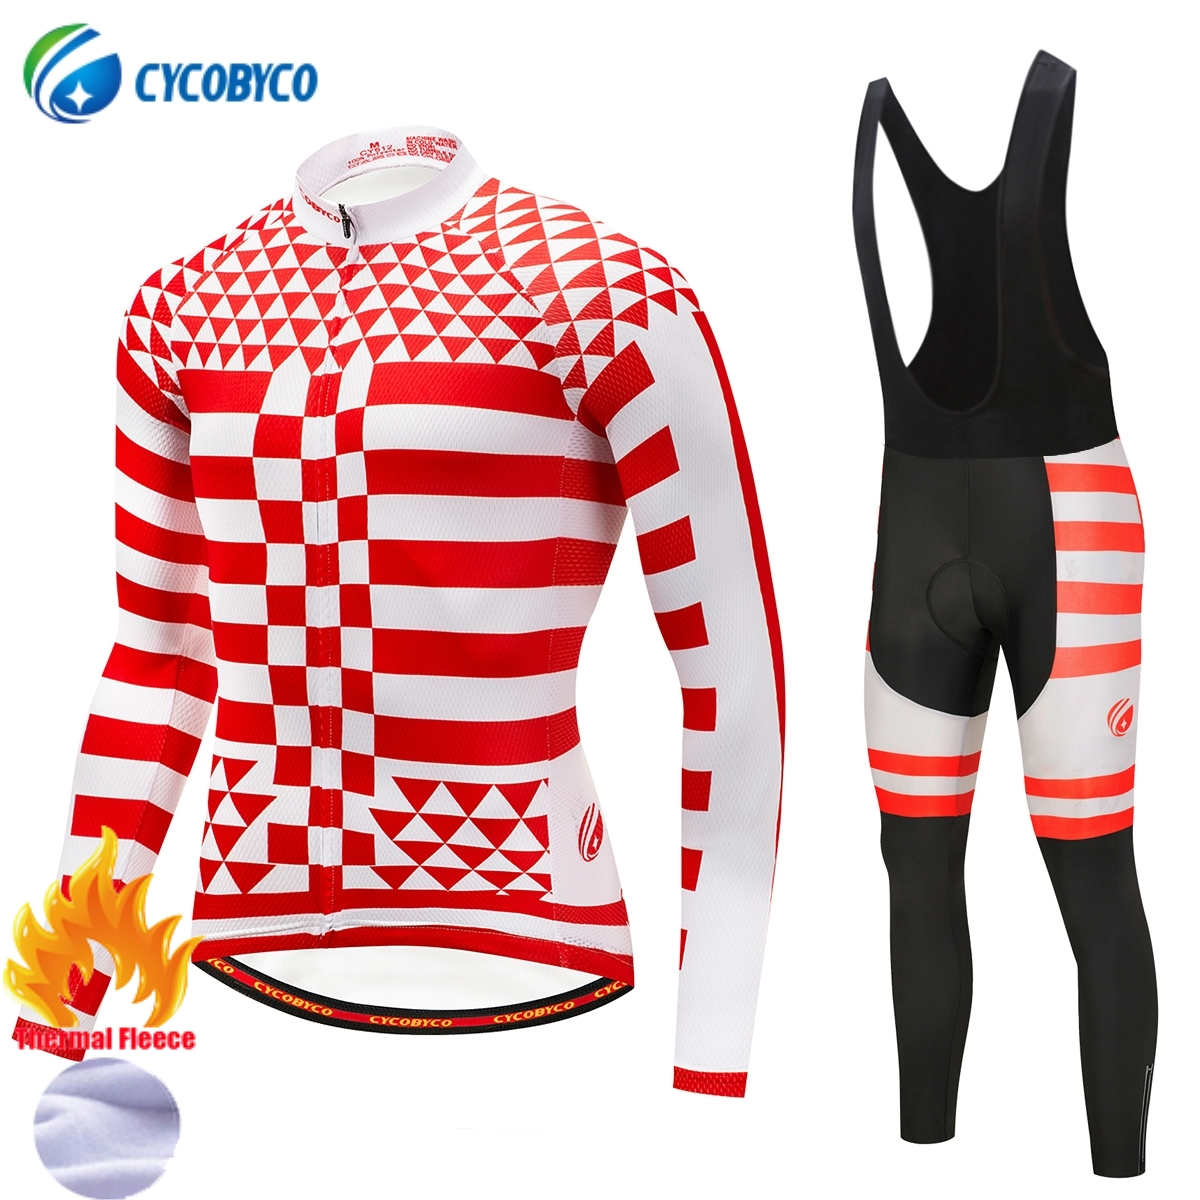 Cycobyco Winter Thermal Fleece Cycling Clothing Bike Clothes Wear Bicycle Jersey Set Long Sleeve Maillot Ropa Ciclismo InviernoCycobyco Winter Thermal Fleece Cycling Clothing Bike Clothes Wear Bicycle Jersey Set Long Sleeve Maillot Ropa Ciclismo Invierno